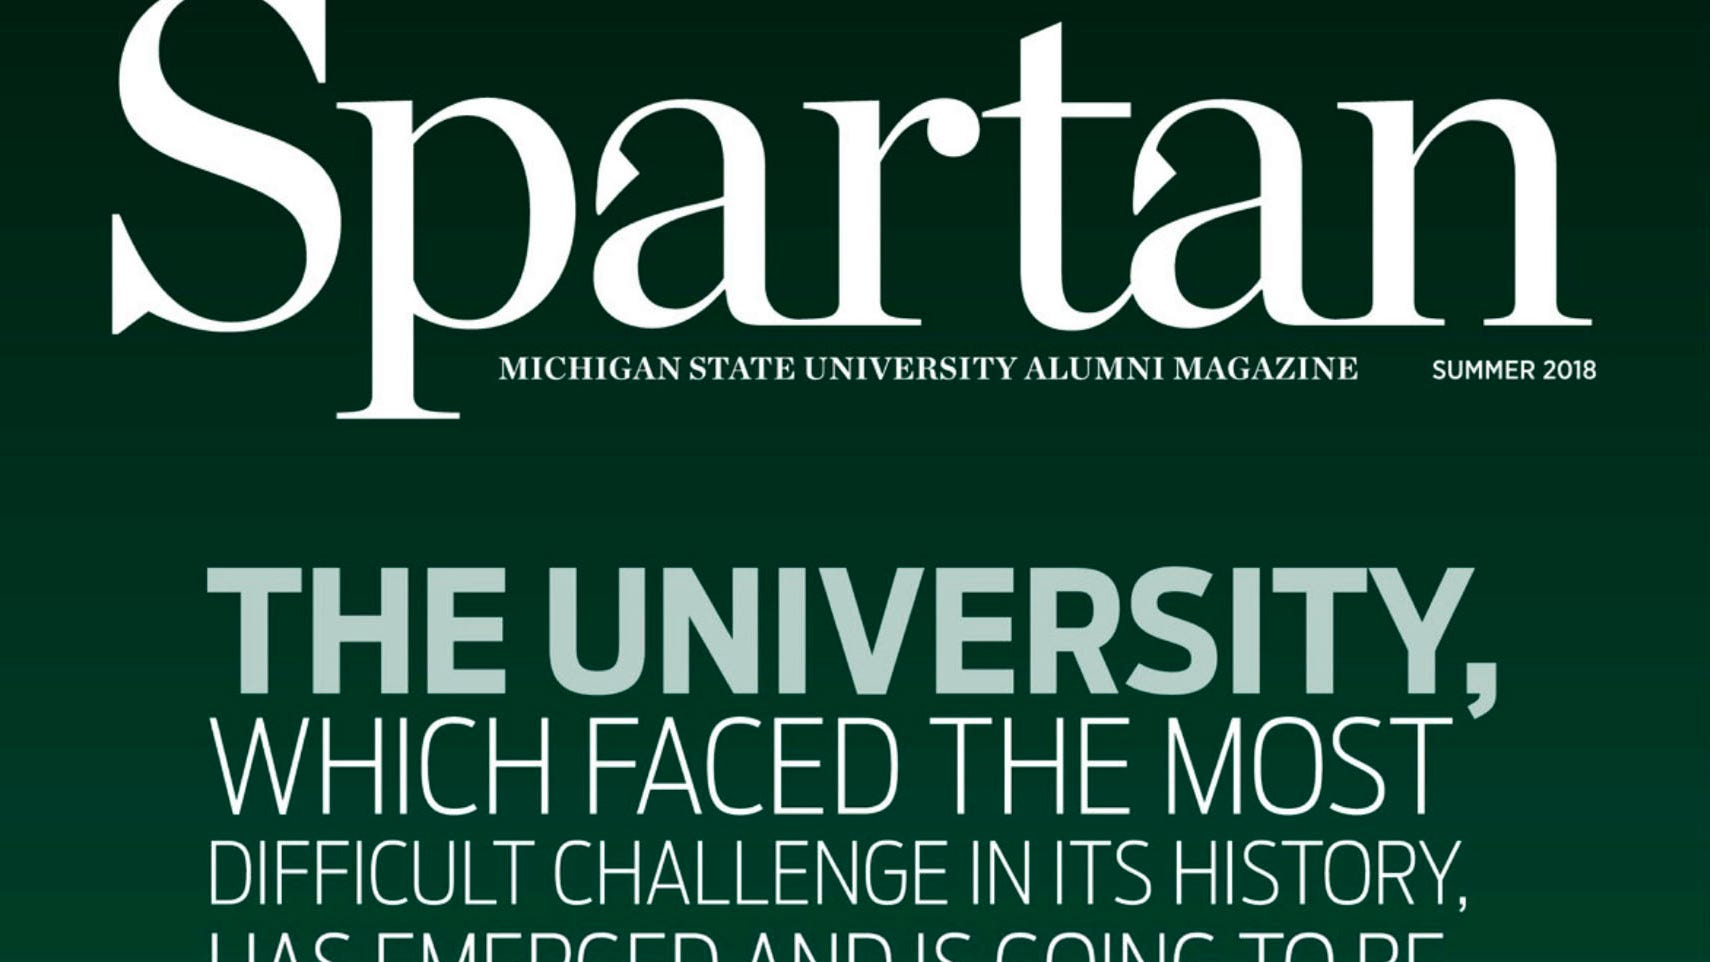 MSU alumni magazine takes the cheery route despite Nassar scandal